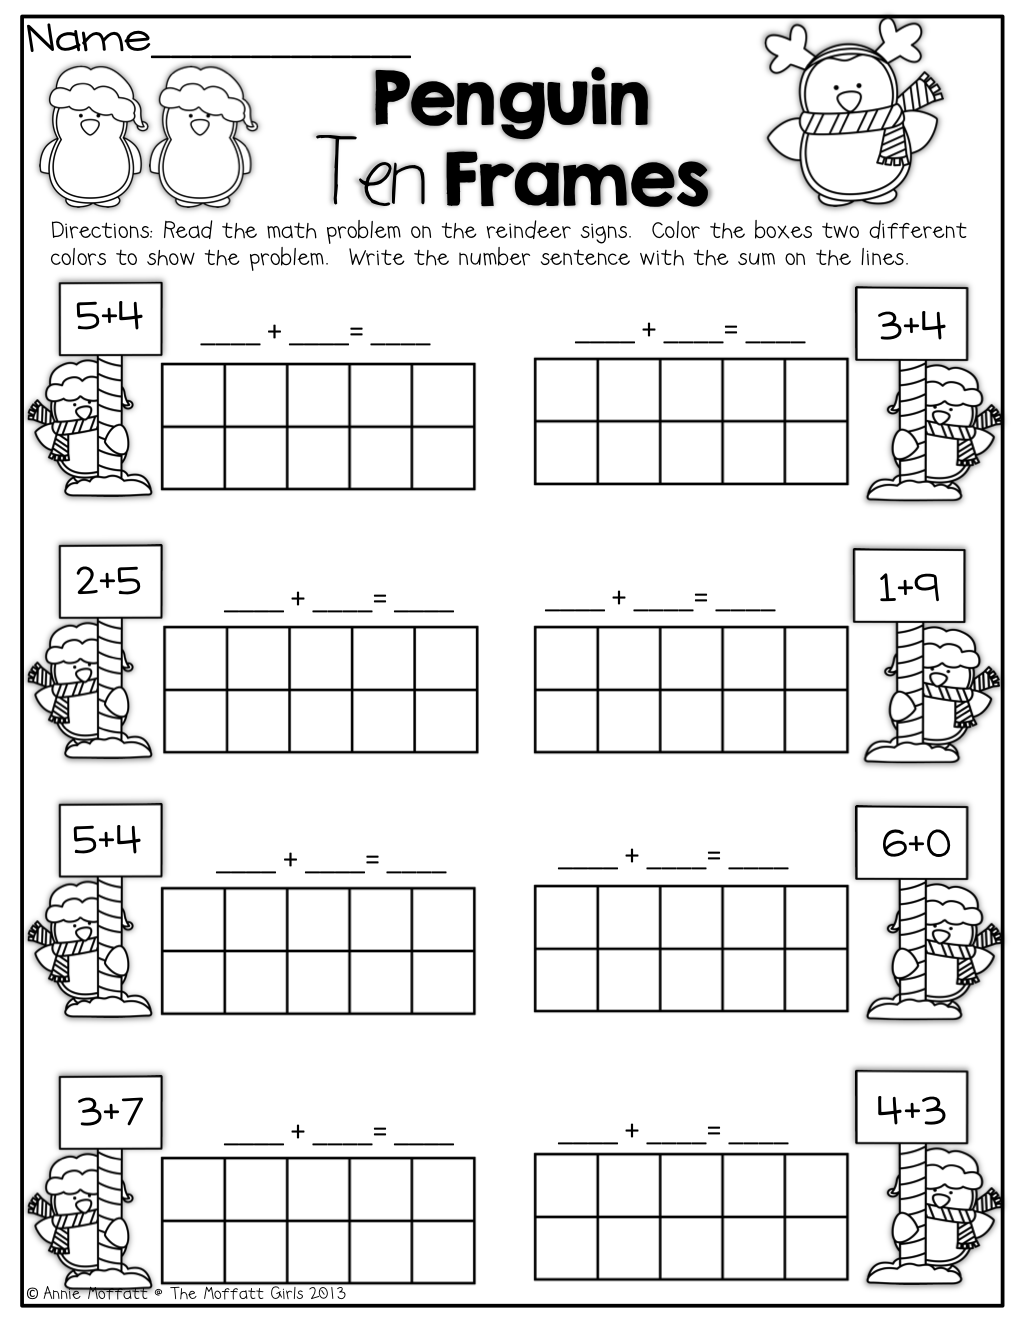 worksheet Penguin Worksheets penguin 10 frames kinderland collaborative pinterest penguins frames